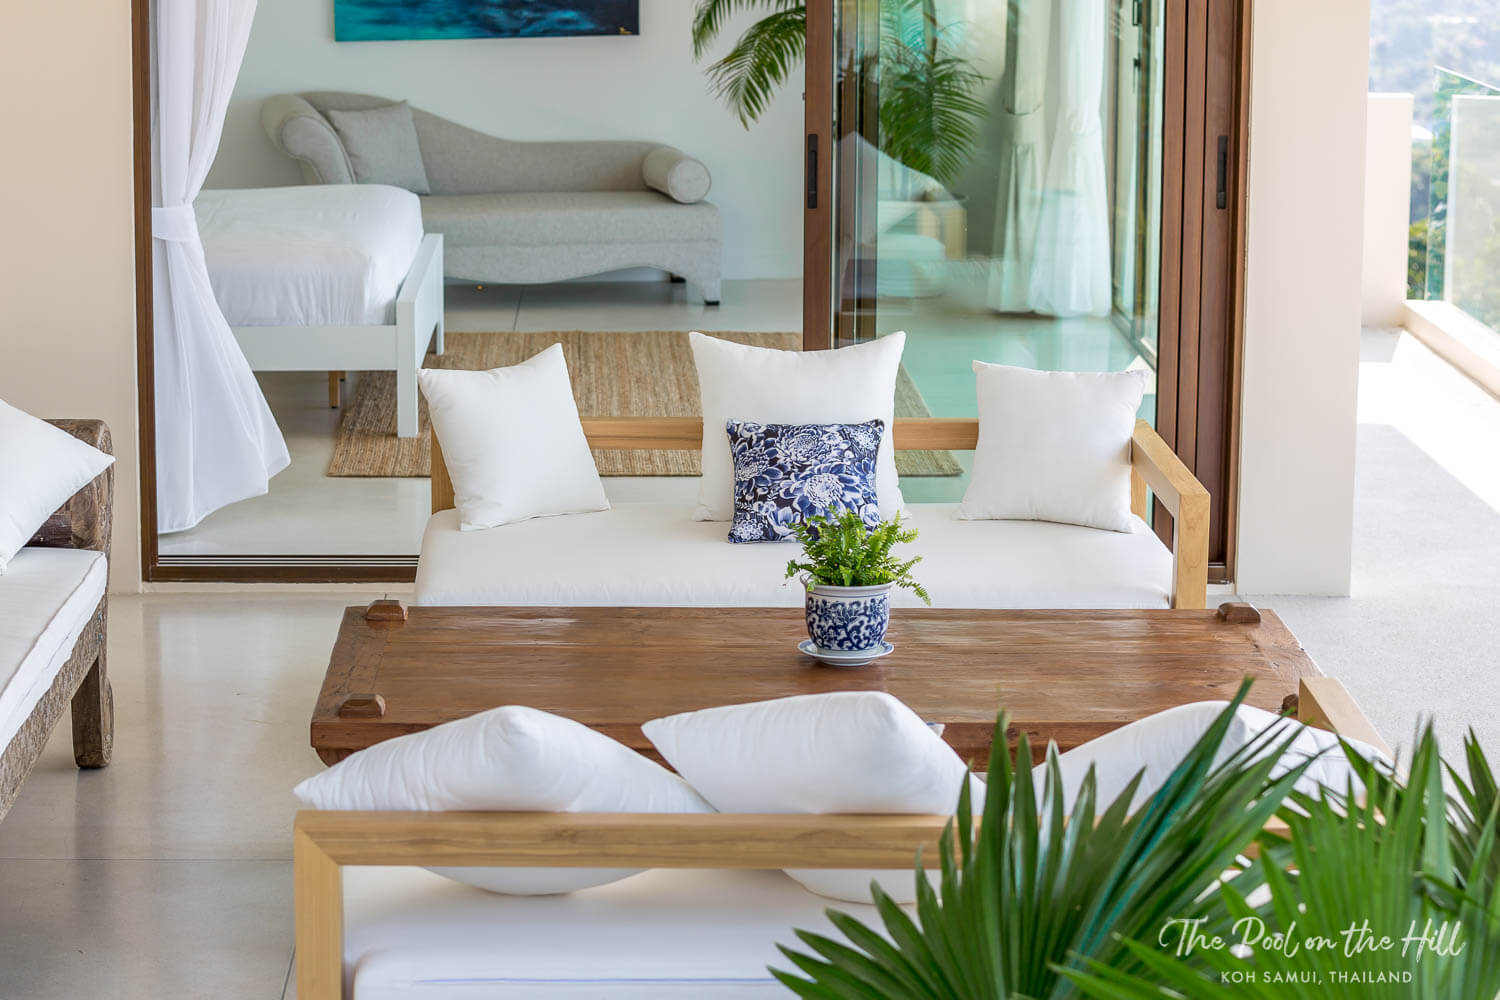 Thailand villa rental: The Pool on the Hill's outdoor living room is just off the second master bedroom